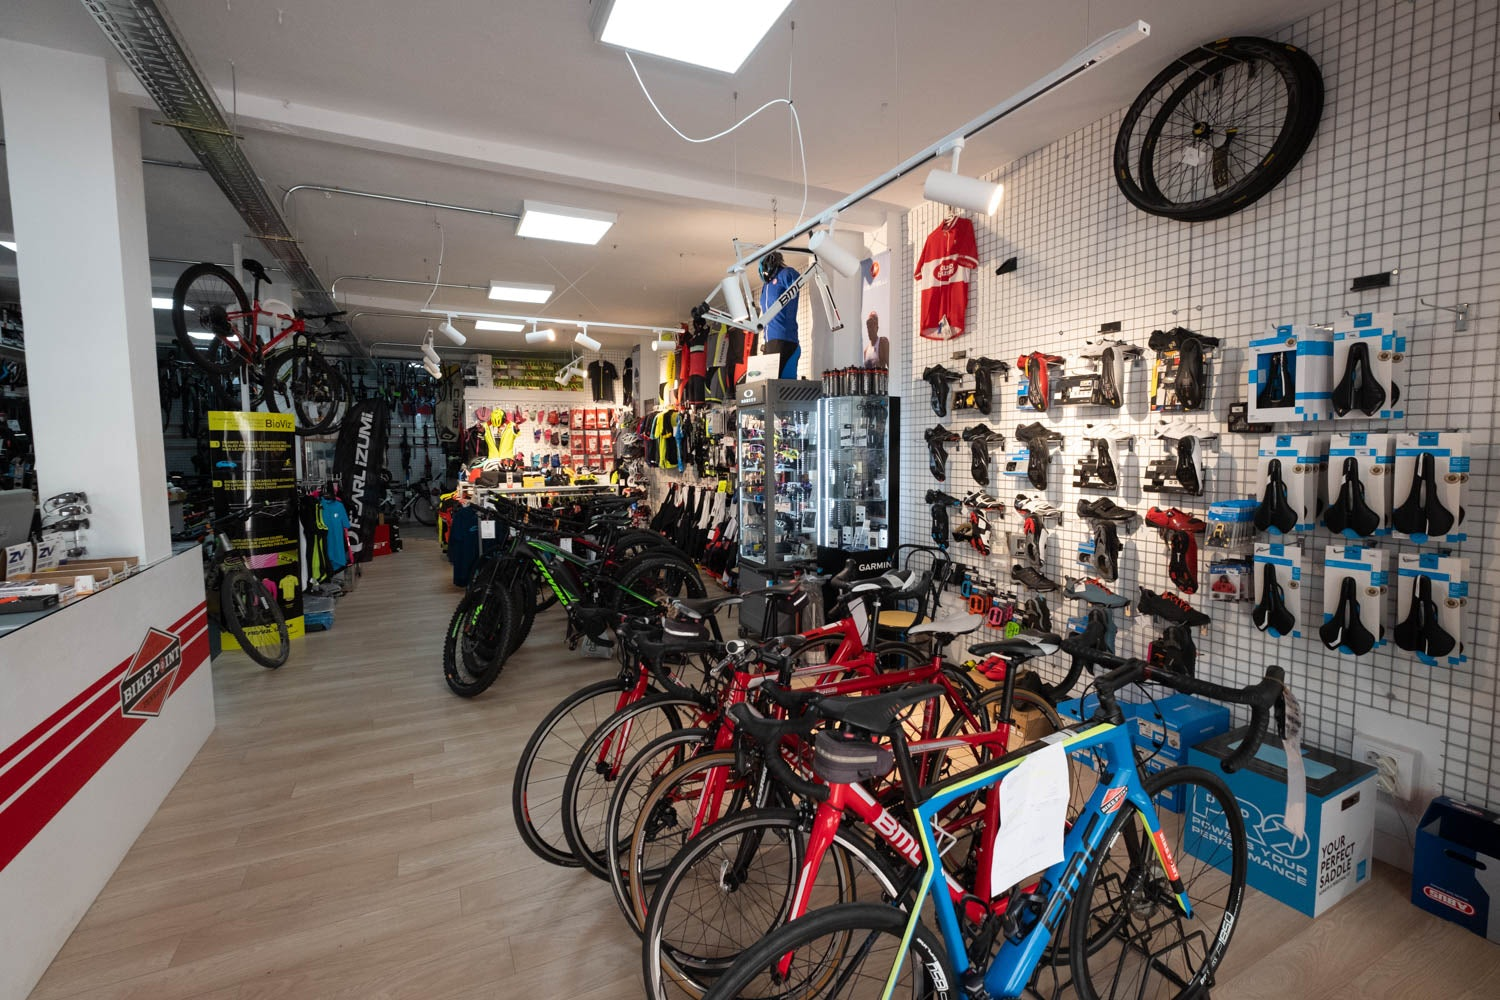 bikes and other accessories at Bike Point store in Tenerife